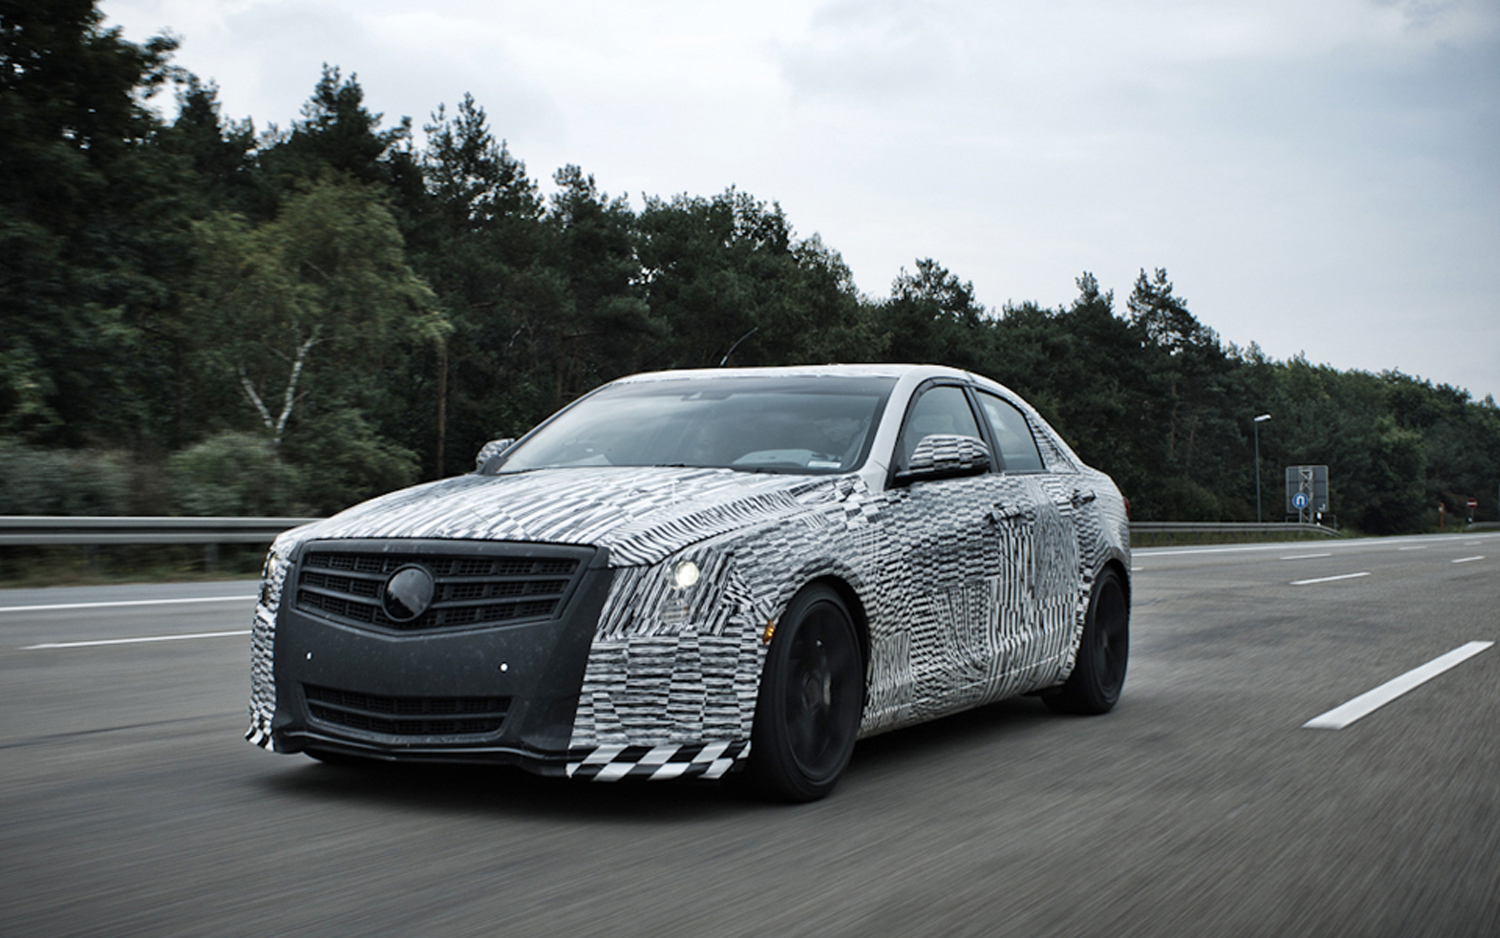 2013 Cadillac Ats To Feature New 270 Hp 2 0 Liter Turbo Four